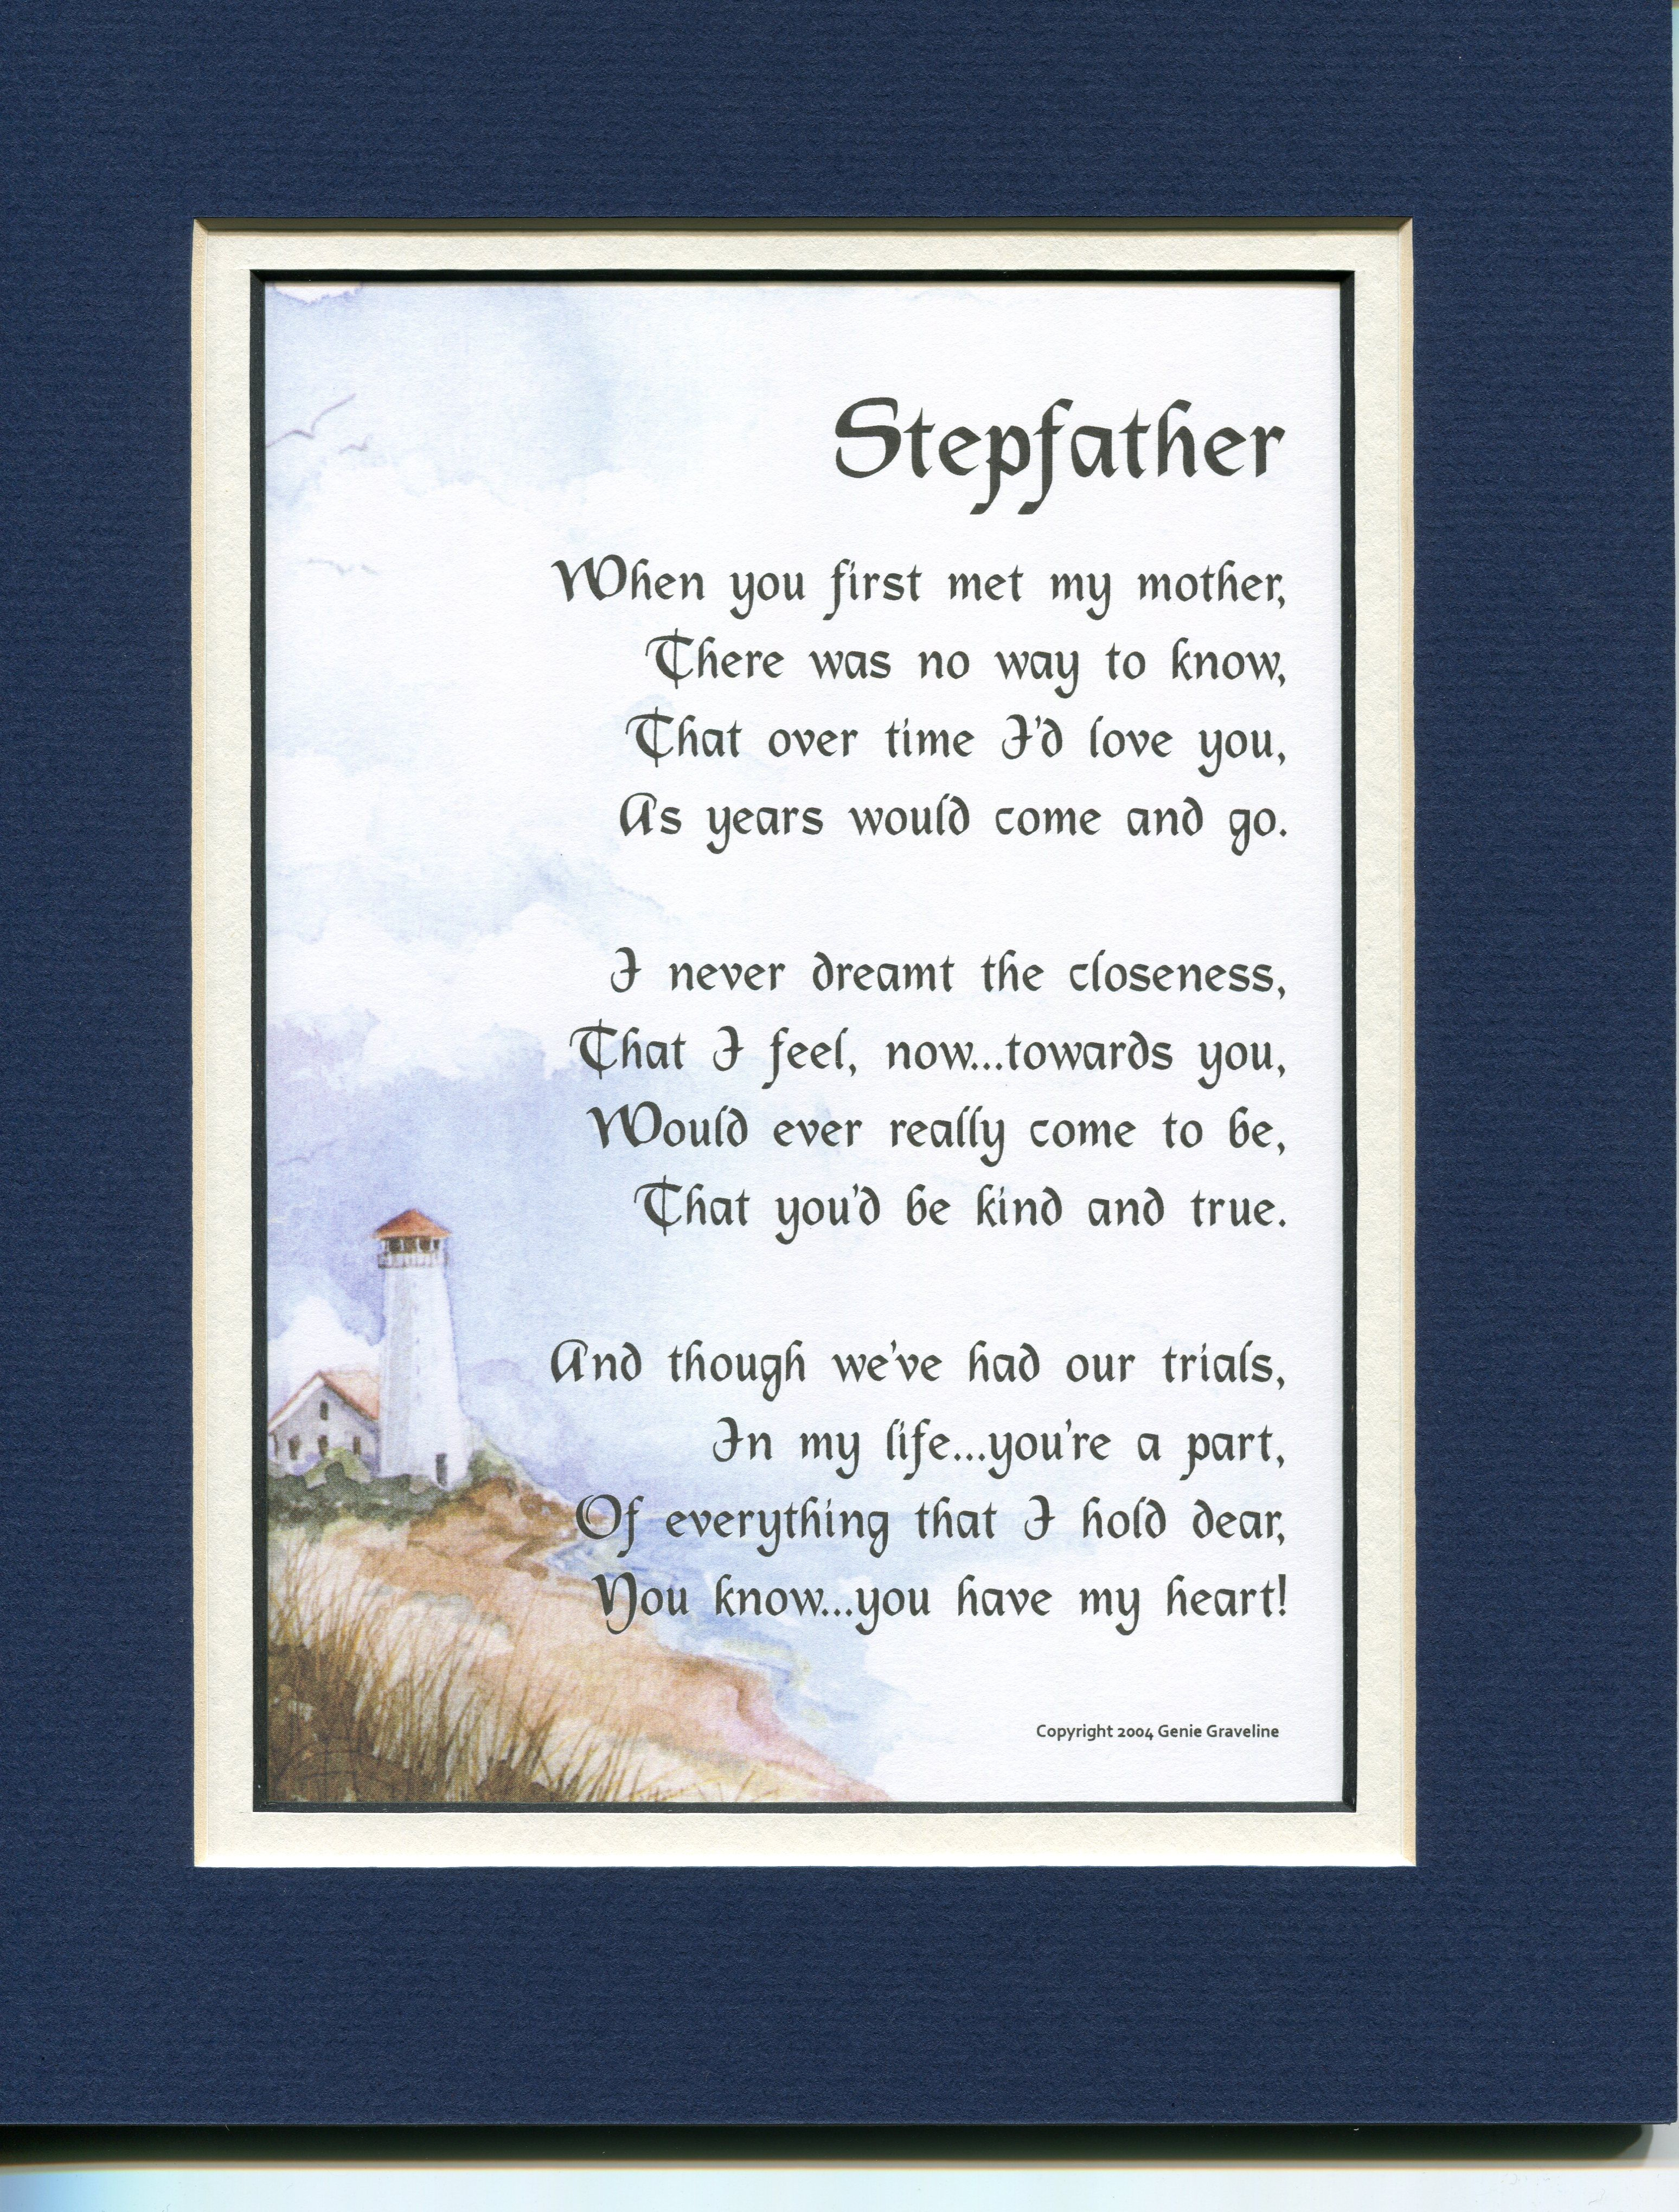 gifts for stepdad gifts for stepfathers fathers day gifts christmas gifts for stepfather step father poems